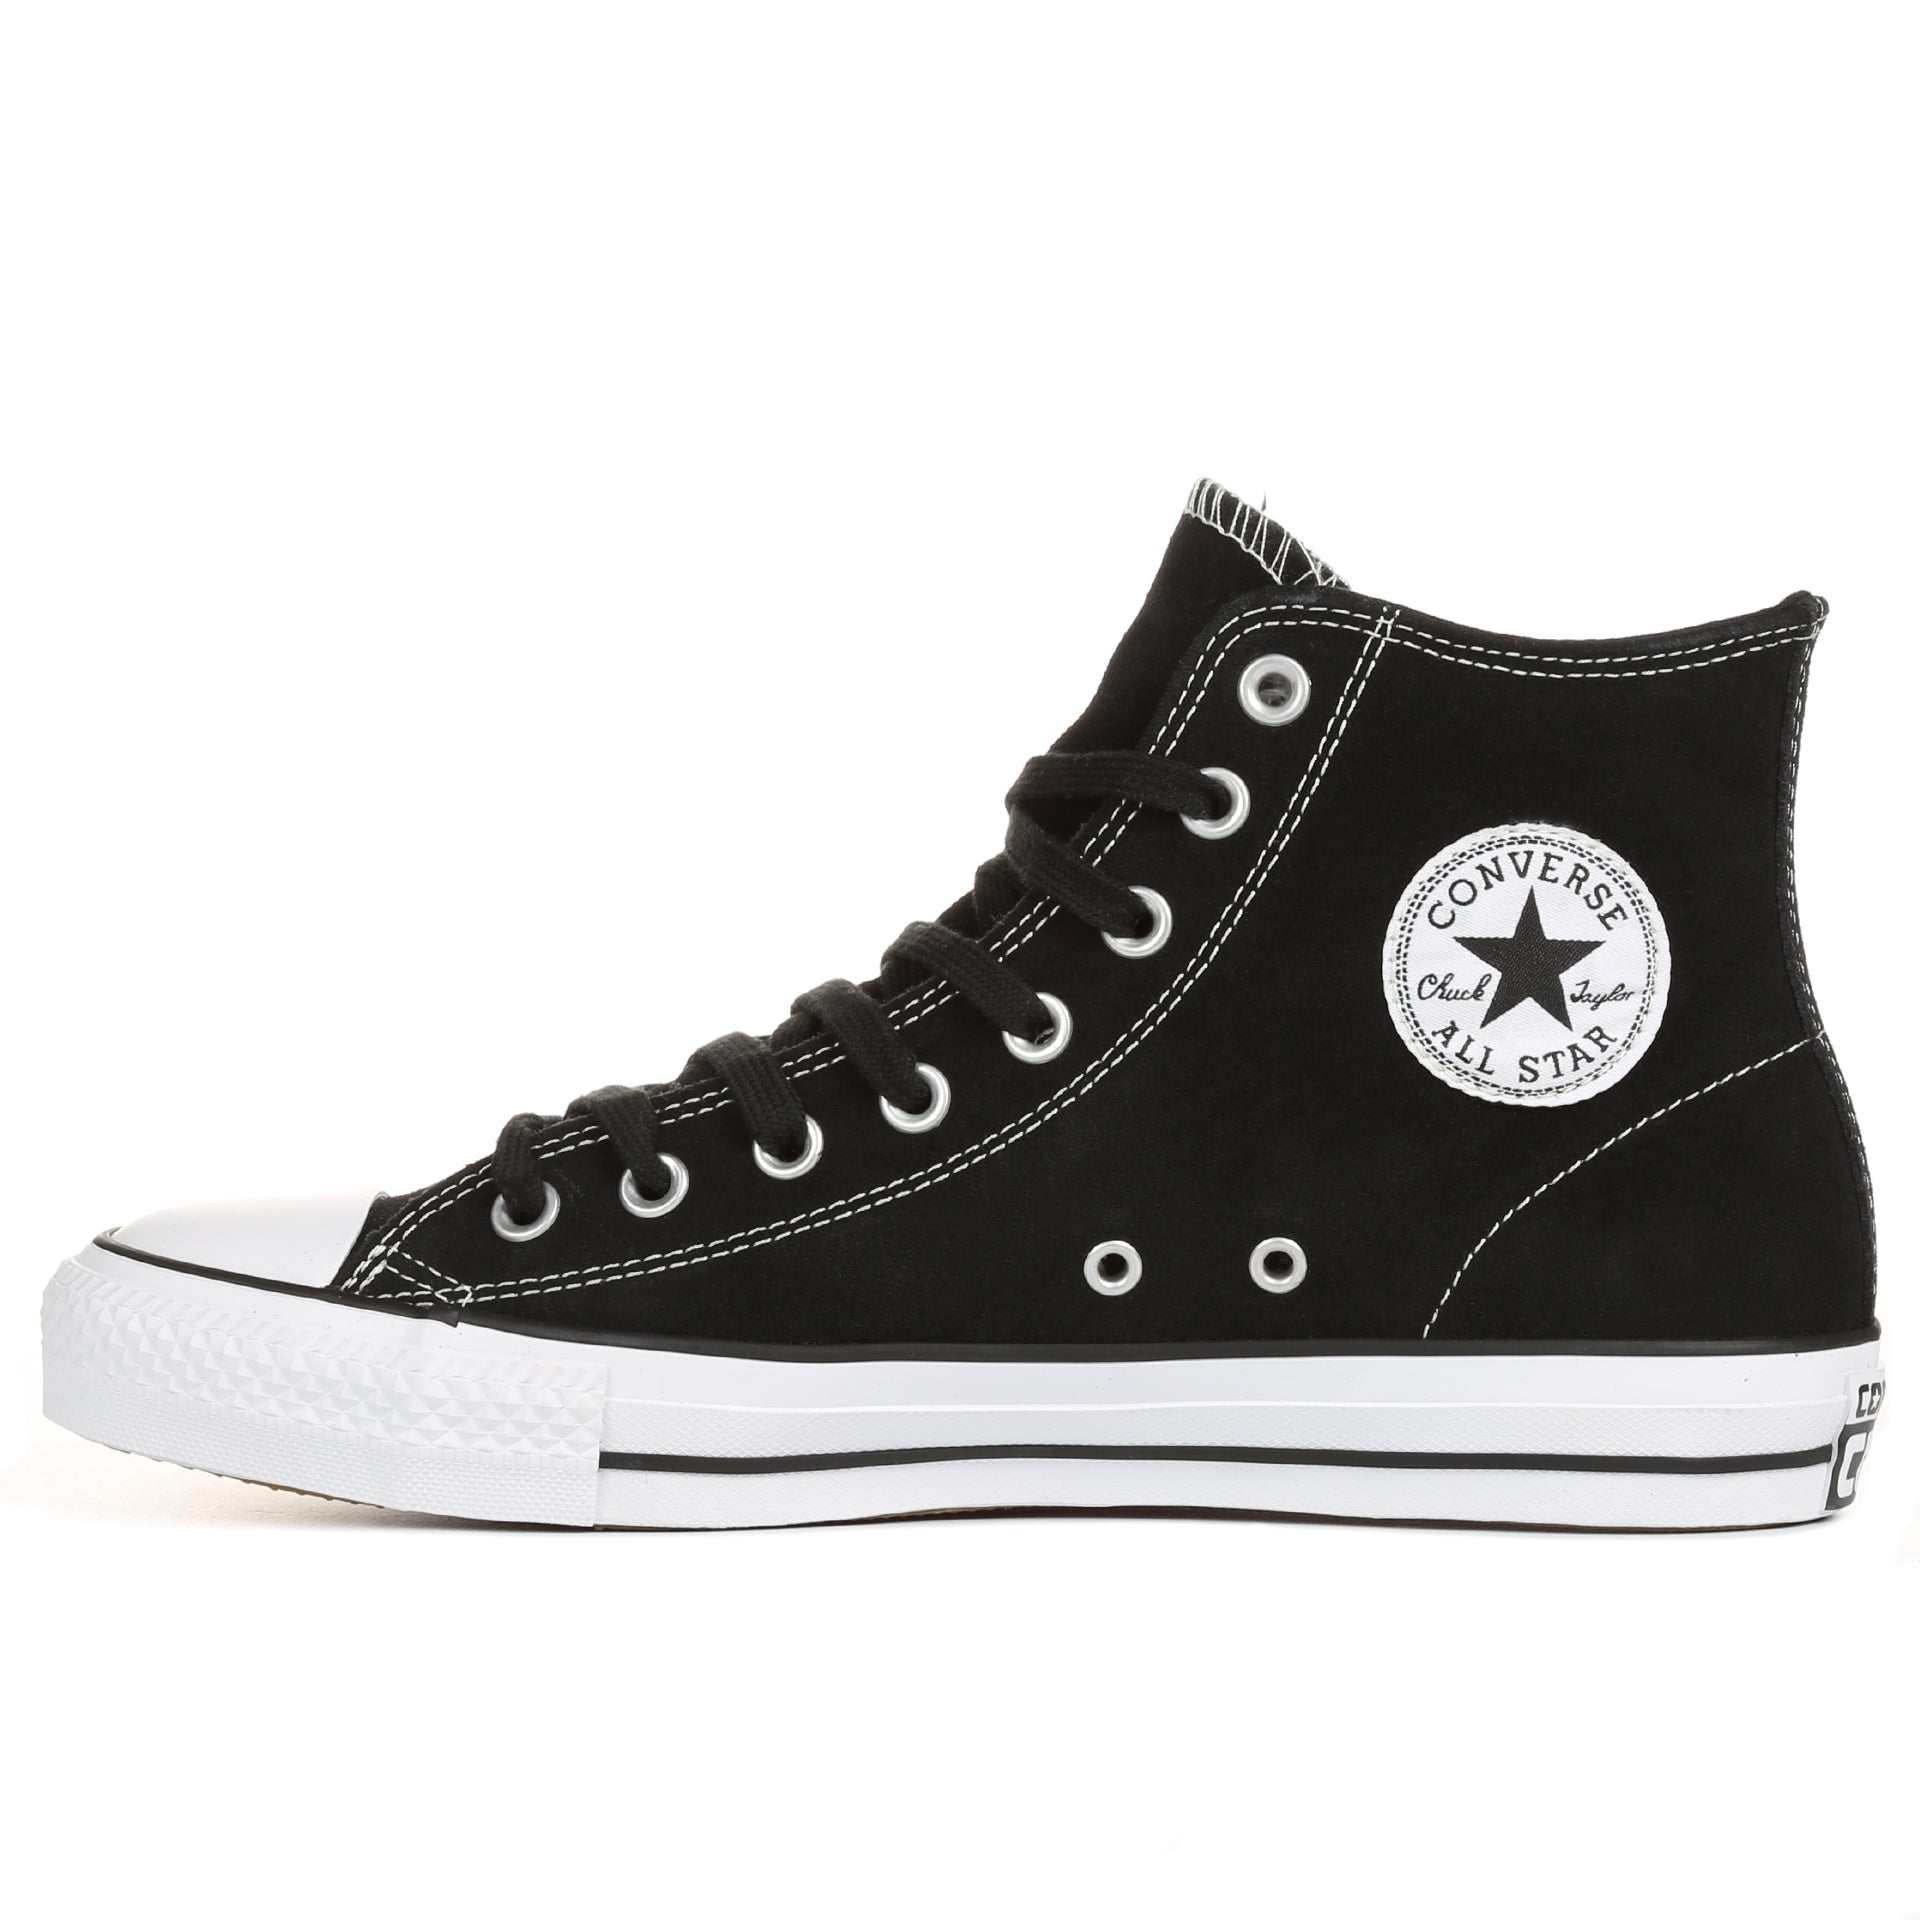 c1d4abb89a21 Converse Chuck Taylor All Star Pro Suede High Top - Black White ...